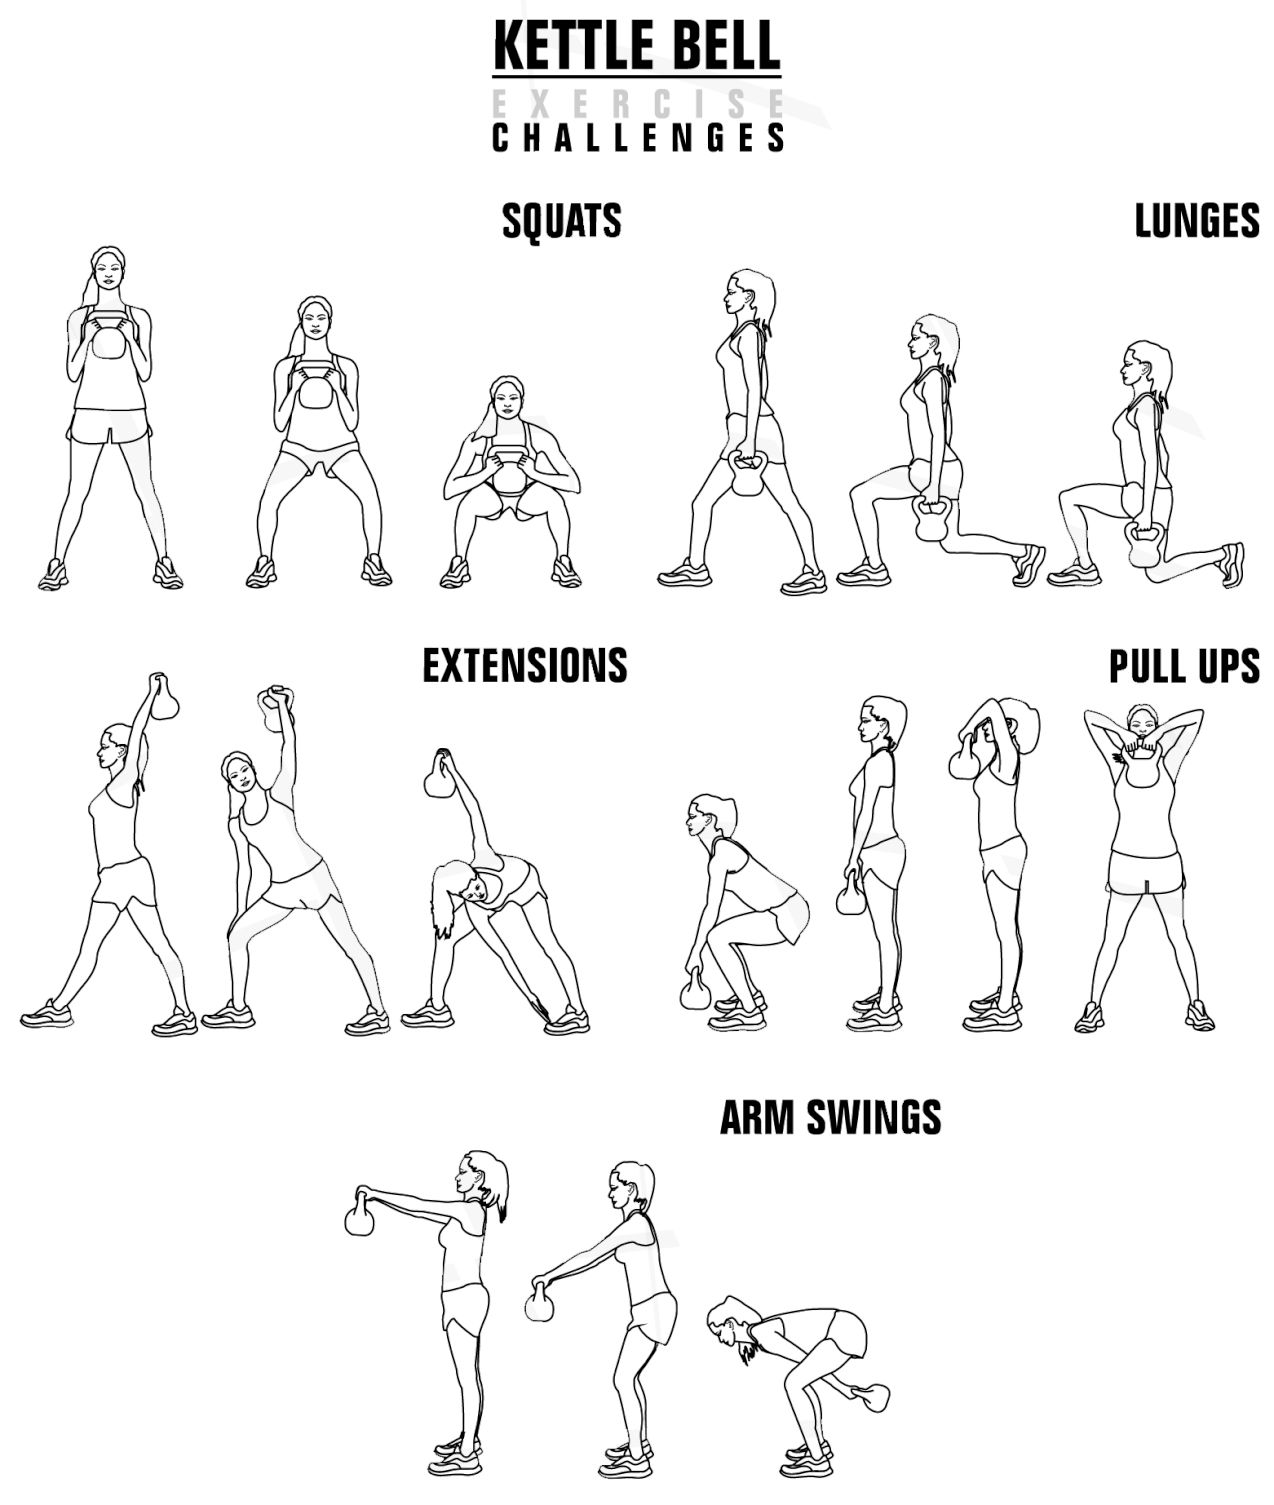 41KE-EXERCISES